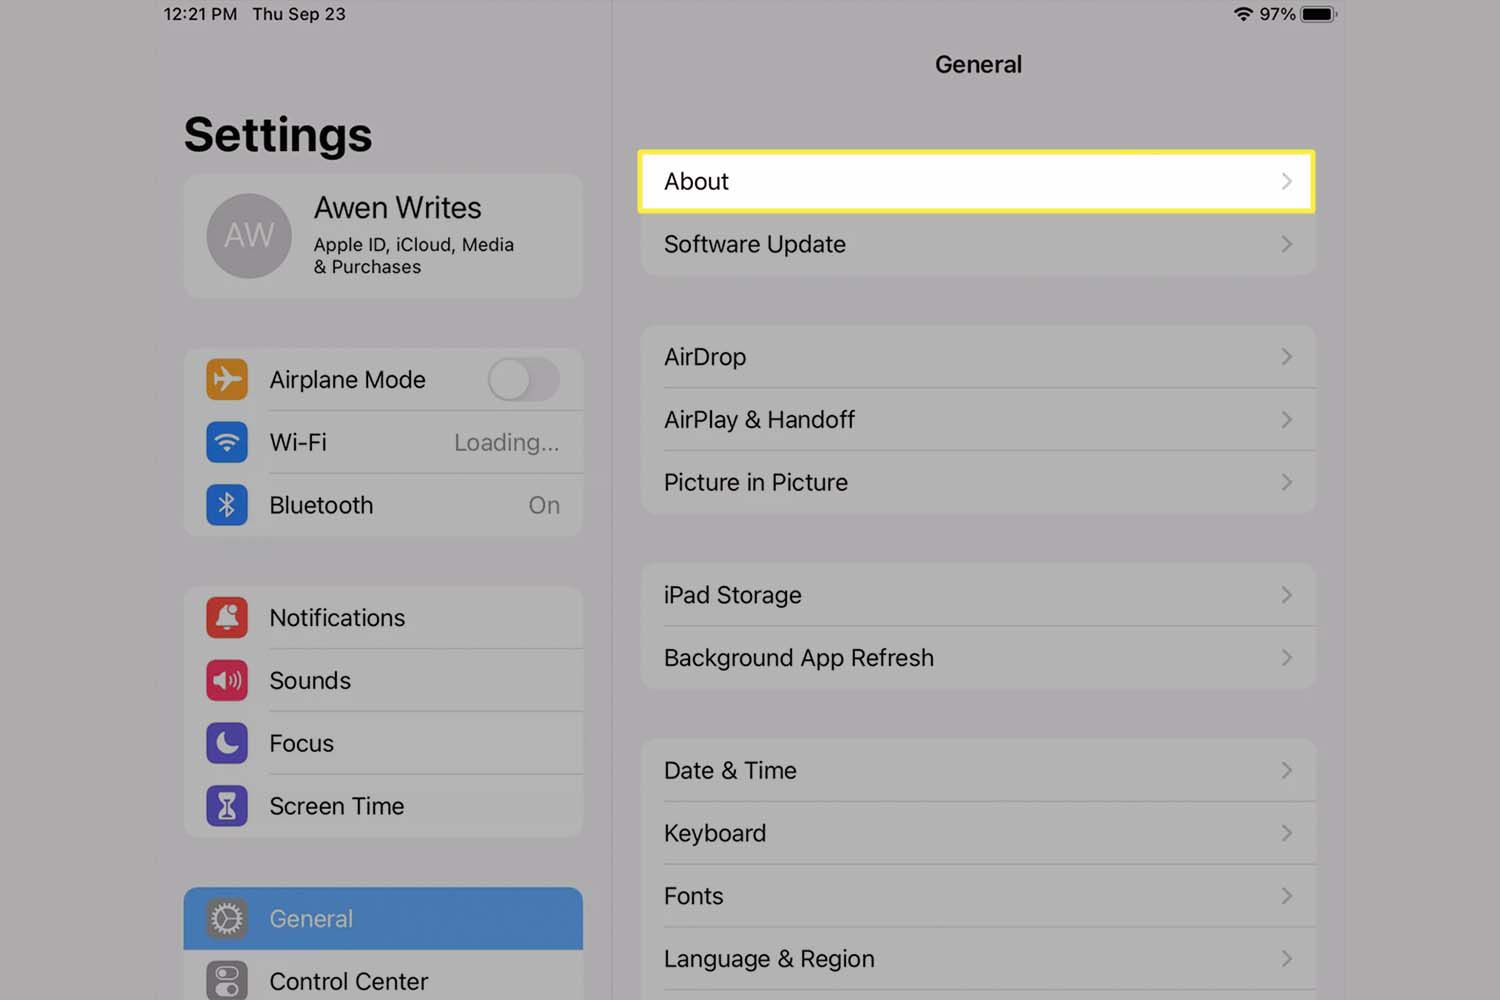 The About option highlighted from iPad settings.